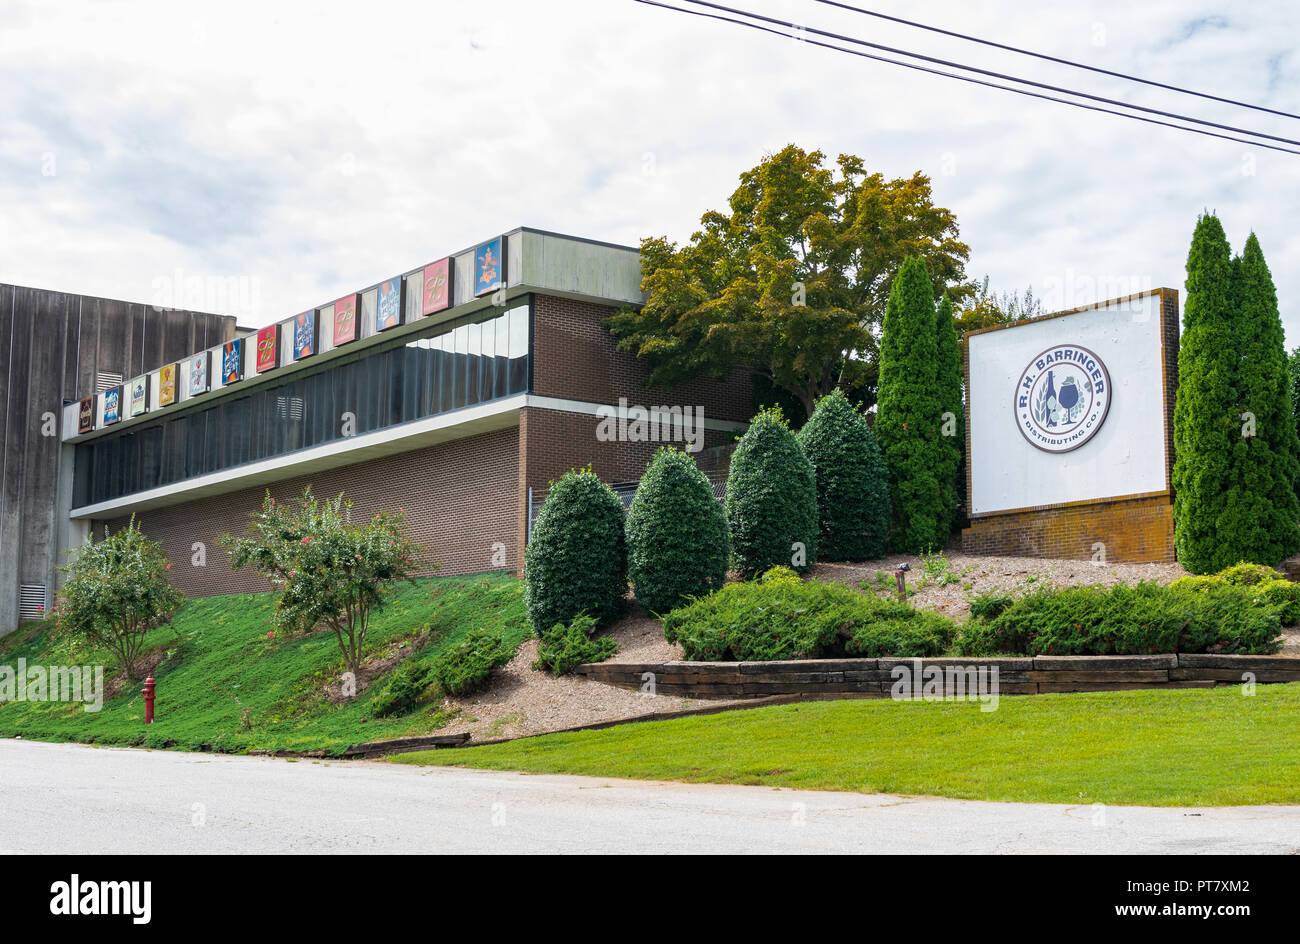 HICKORY, NORTH CAROLINA, USA-9/18/18: Building and sign of local beer distributing company, R. H. Barringer Distributing Co. Stock Photo